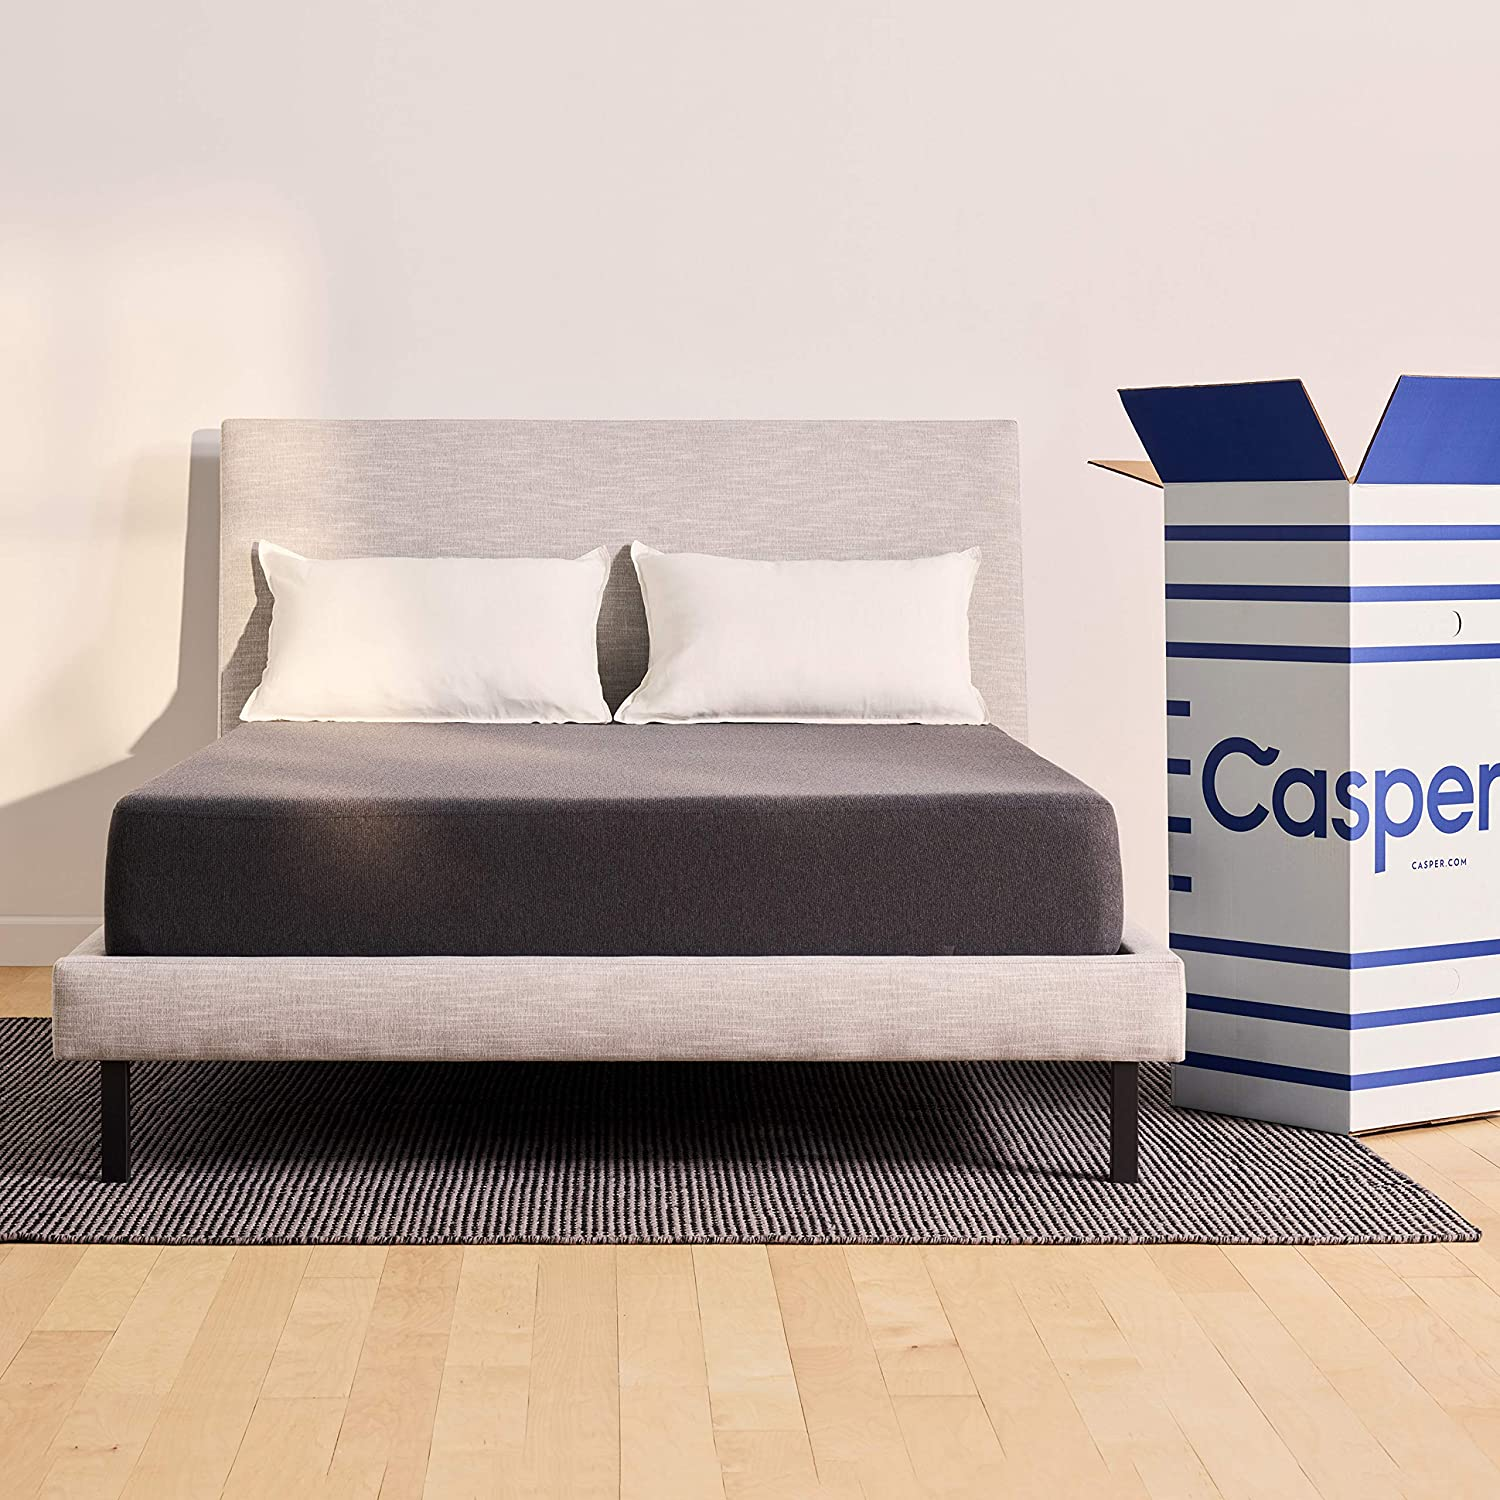 Image result for casper element mattress